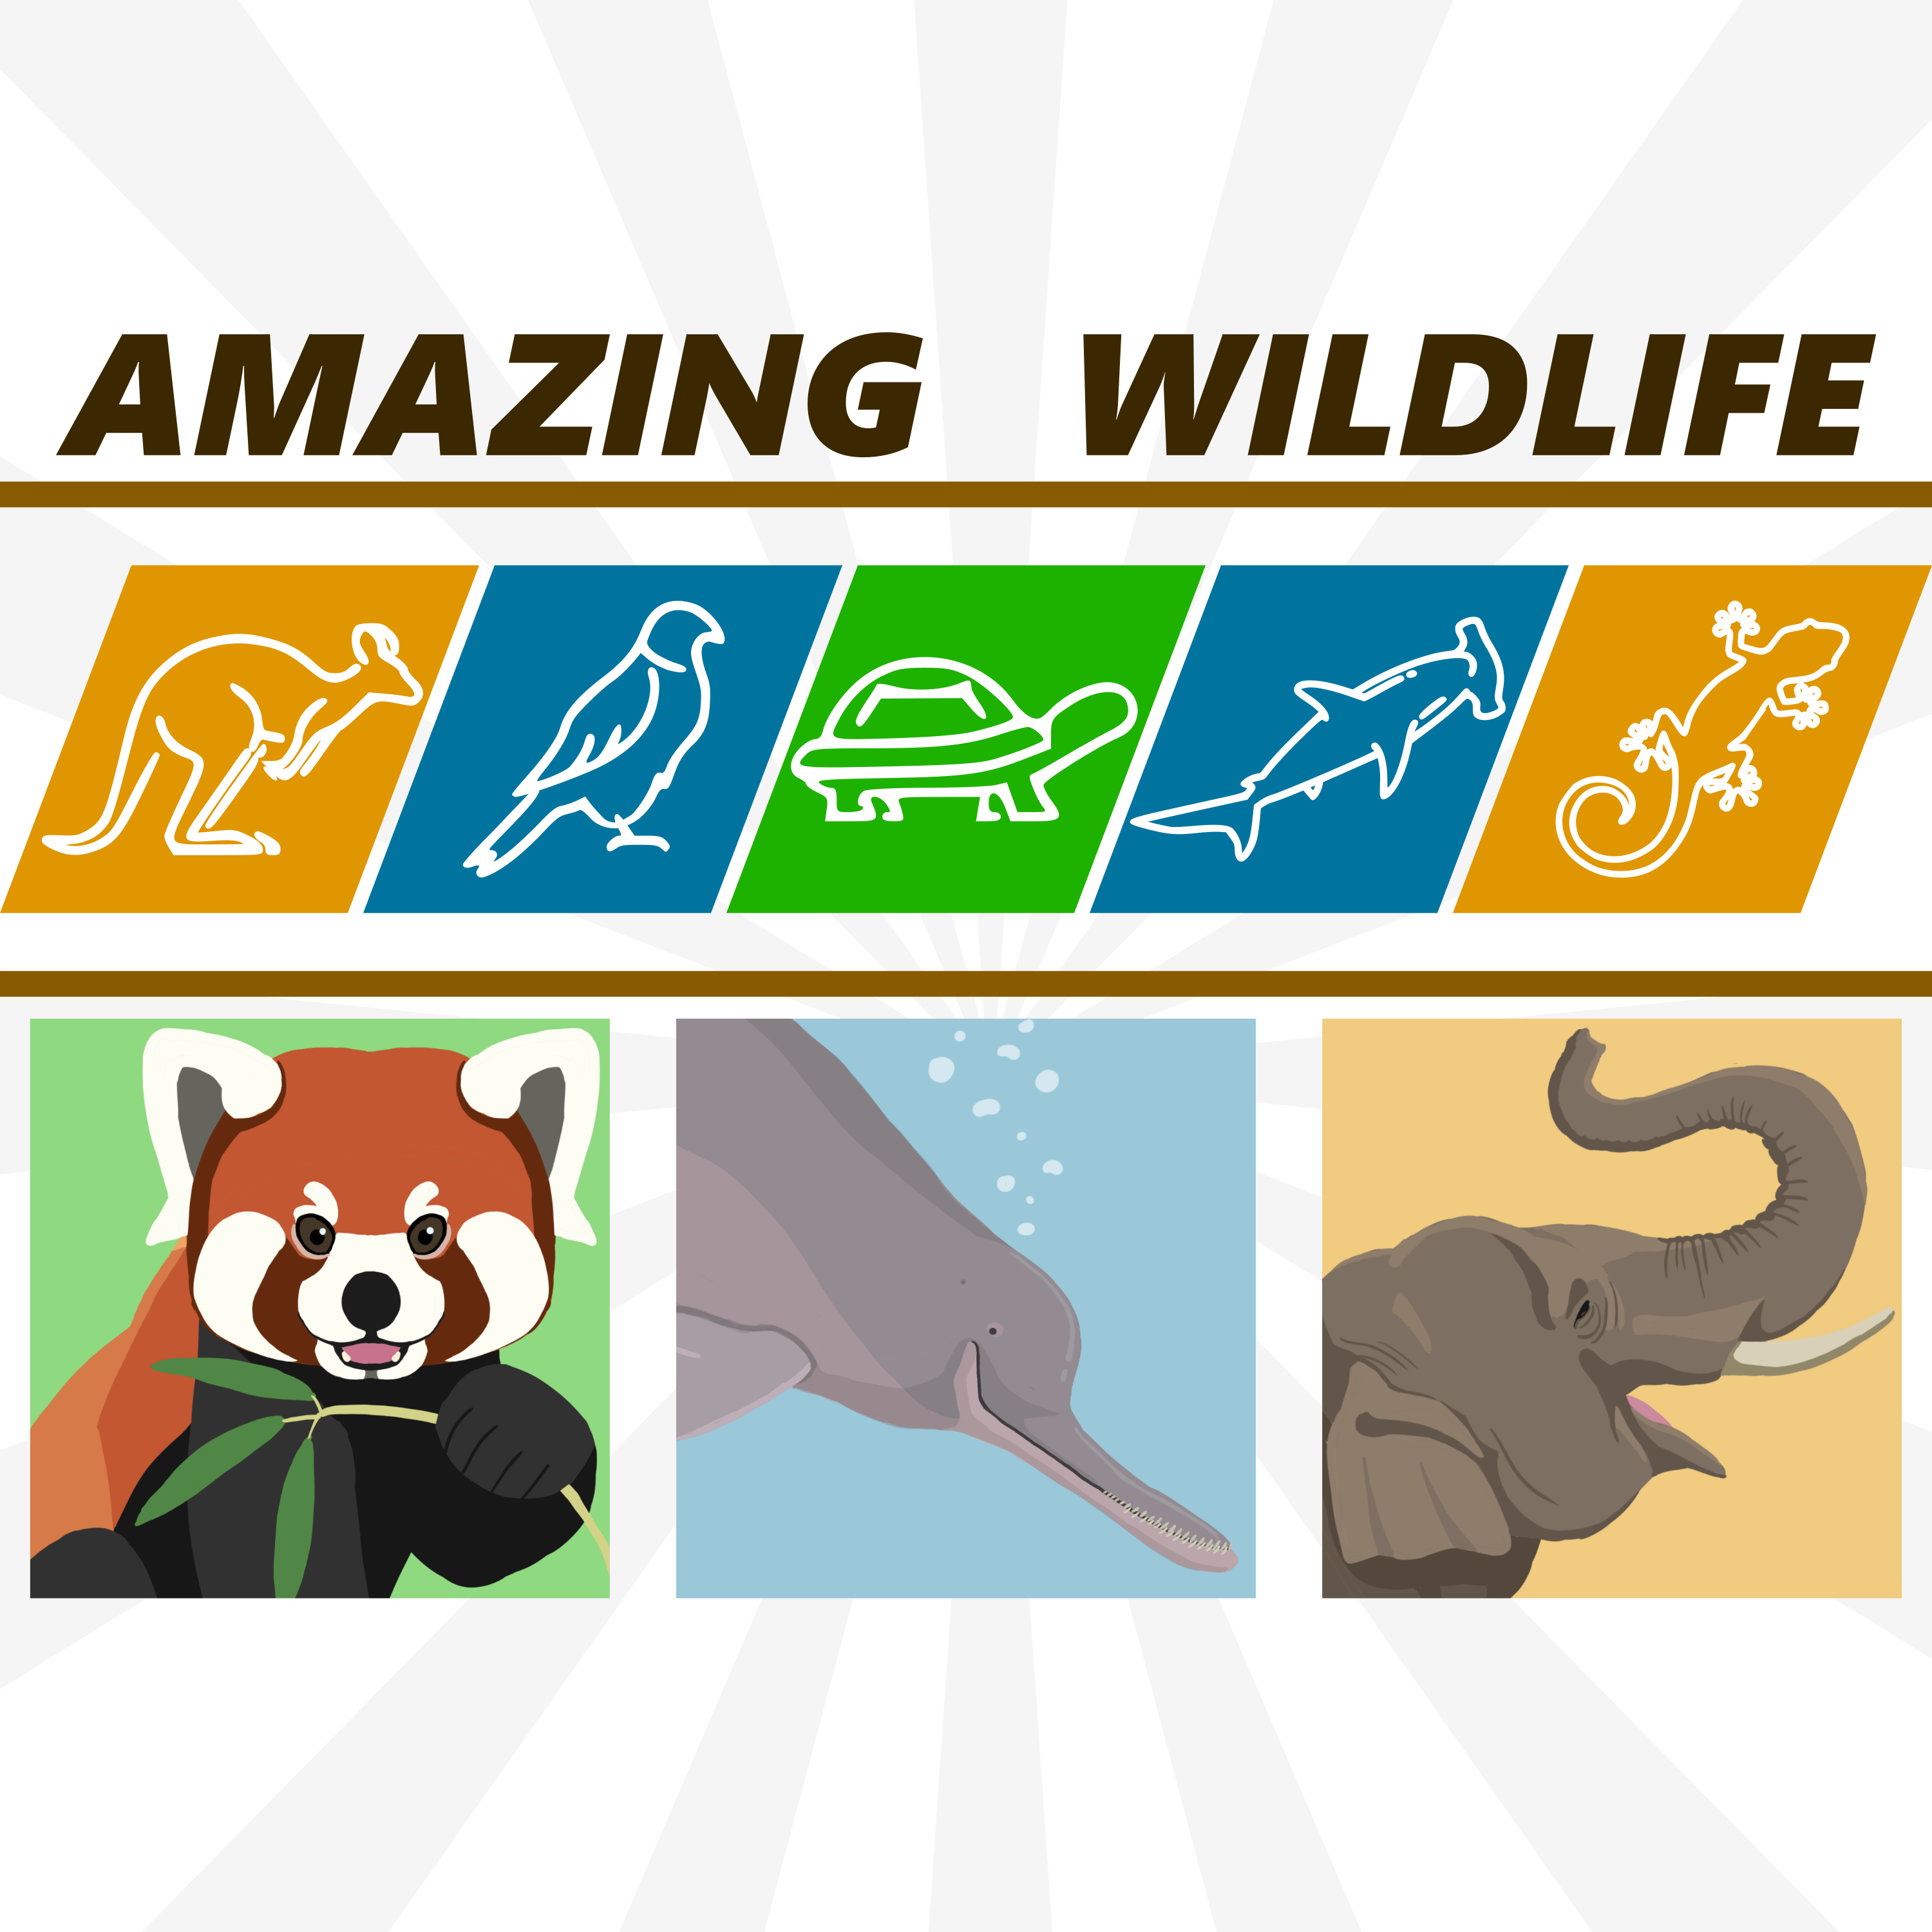 Red Panda | South Asian River Dolphins | Asian Elephants